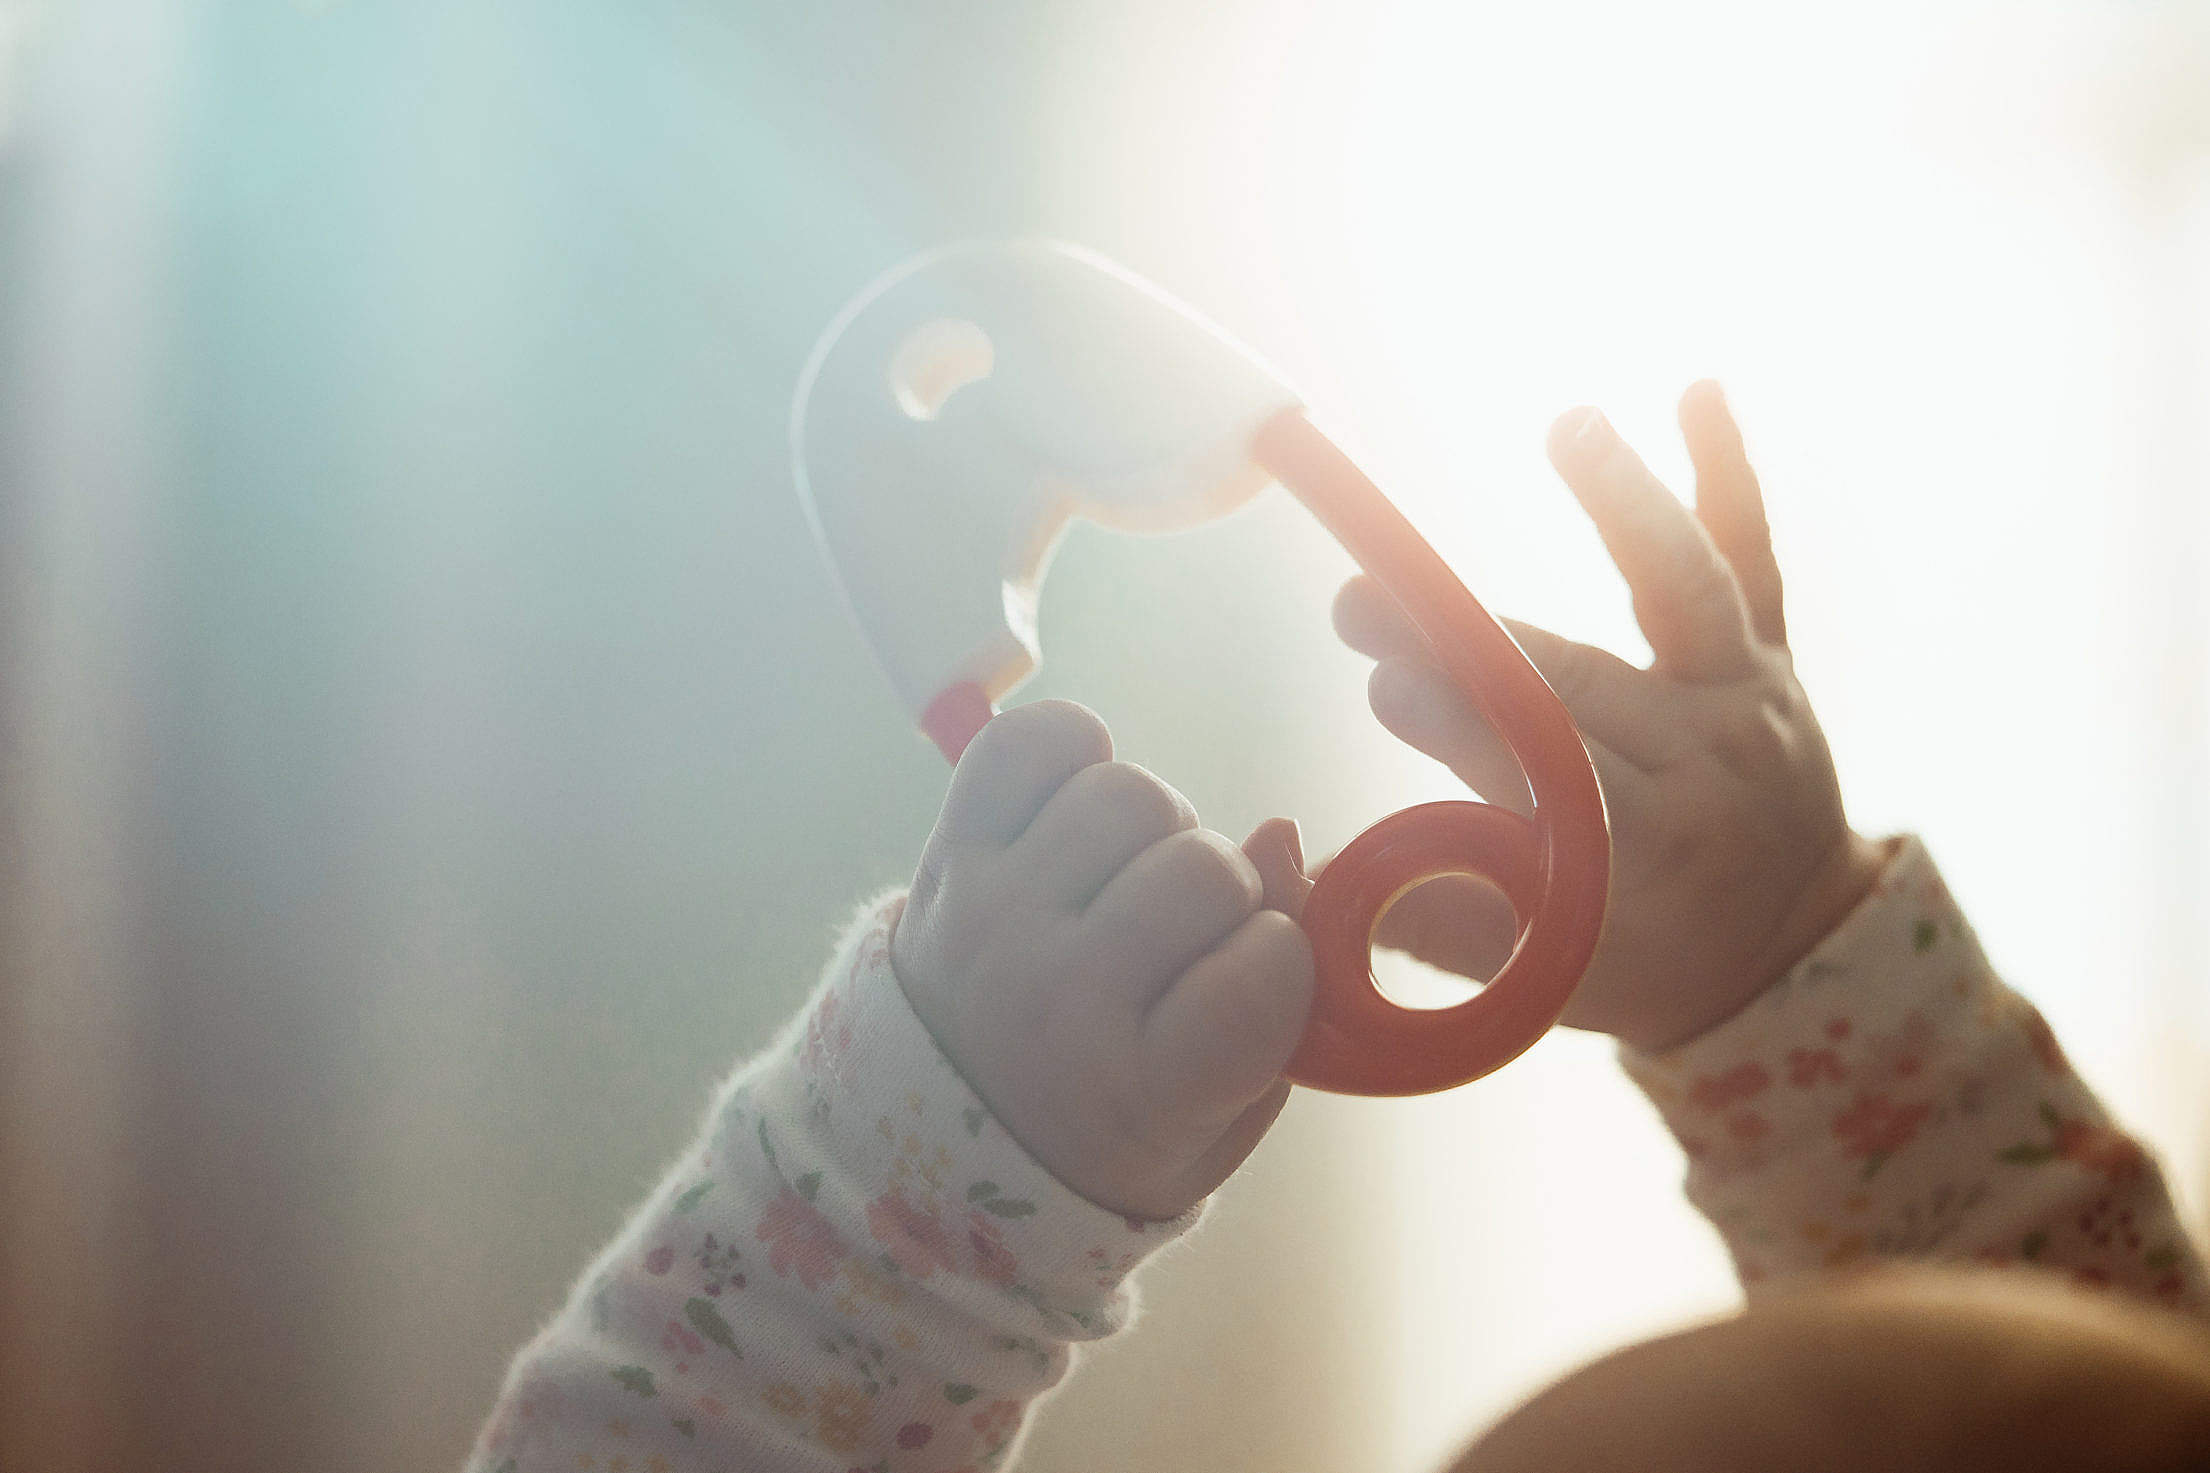 Newborn Baby Hands with a Toy Free Stock Photo